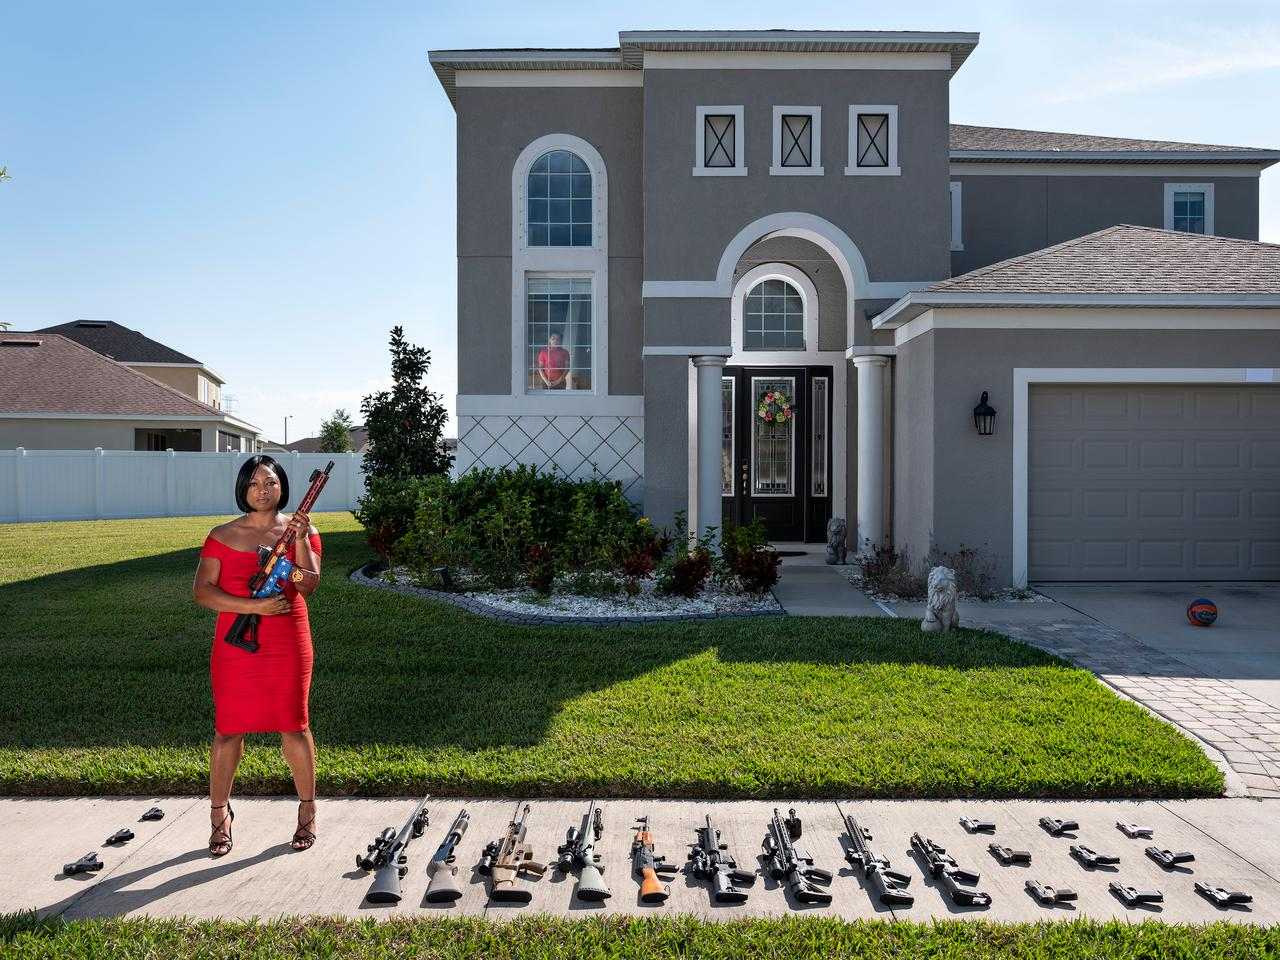 2nd Place - Avery Skipalis (33), outside of her house, posing together with all the firearms she owns, Tampa, Florida